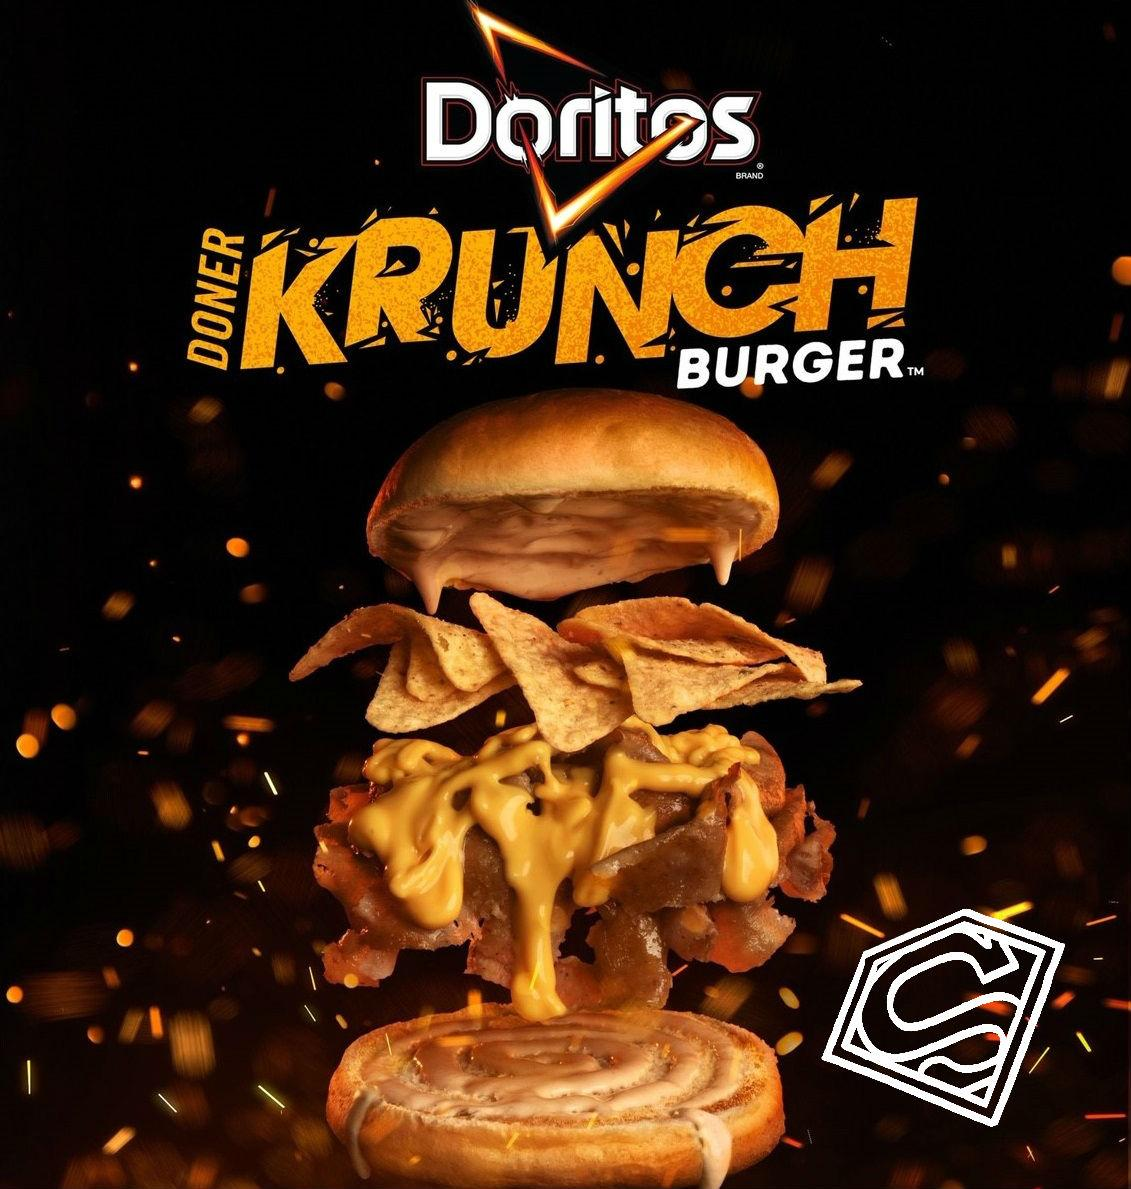 Get crunching with the new mouth watering Doritos Doner Krunch burger now at GDK. 🍔